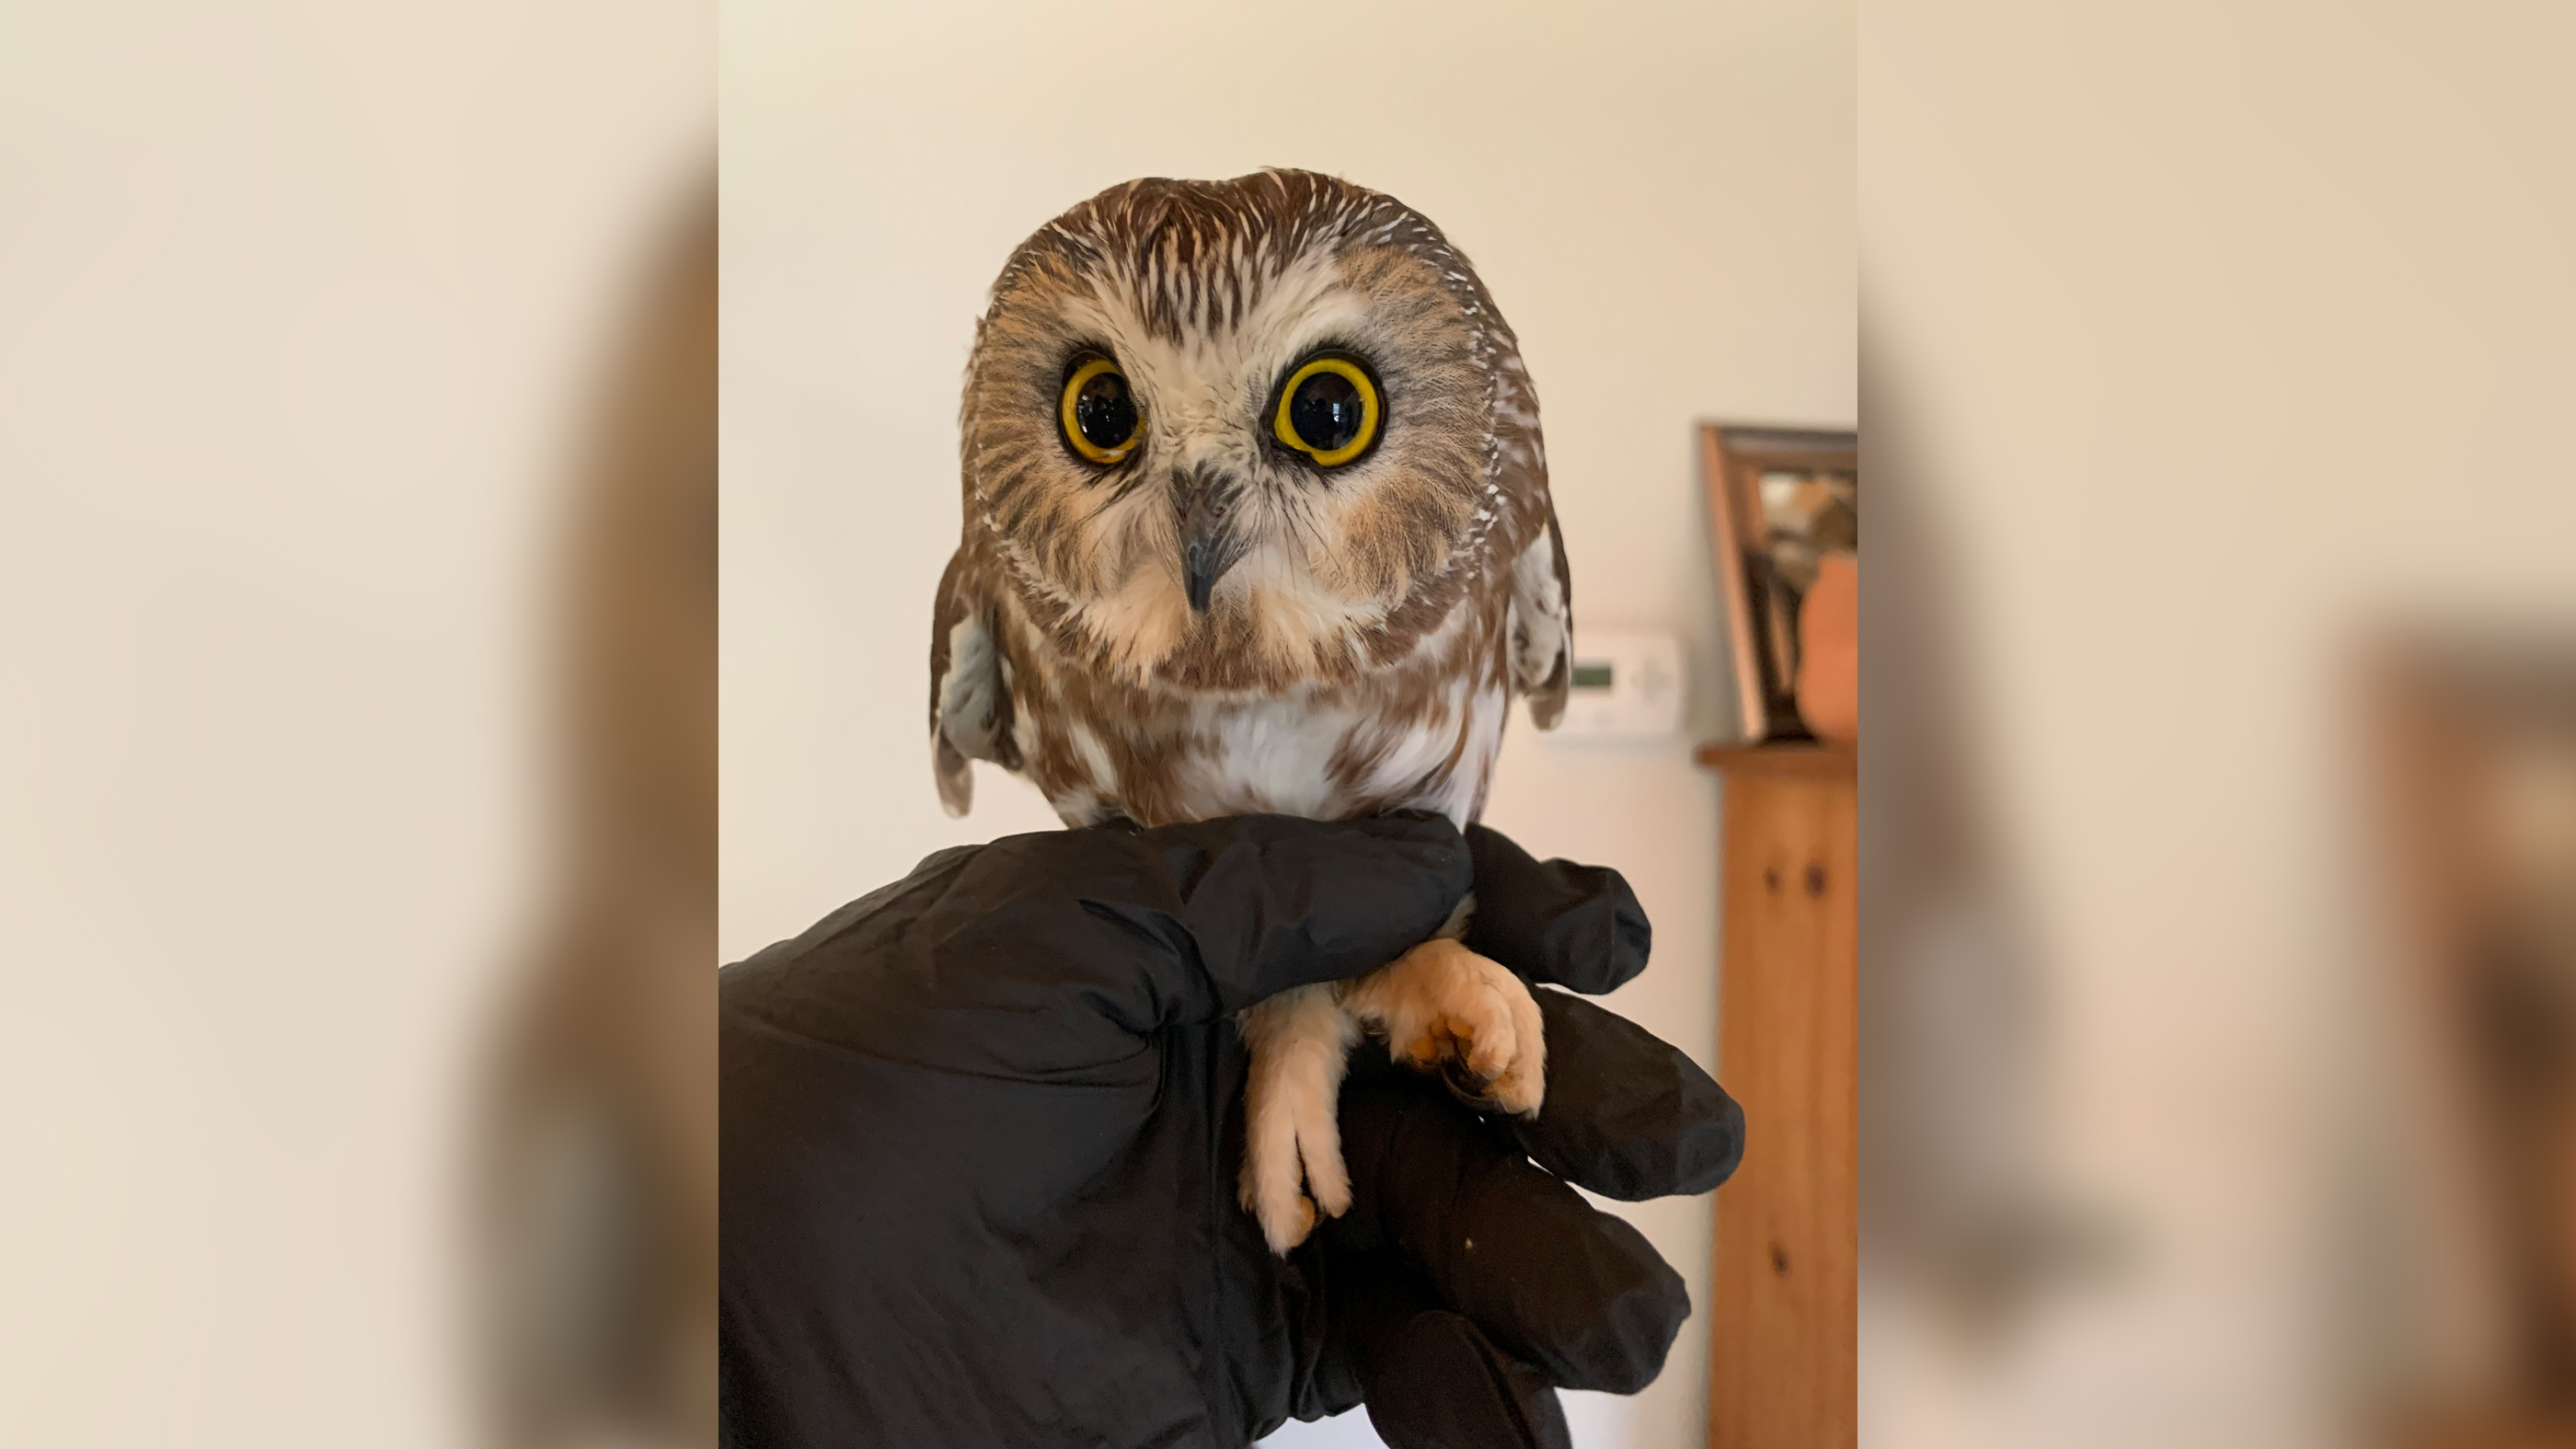 Northern saw-whet owls have a catlike face, oversized head and bright yellow eyes, according to the Cornell Lab of Ornithology.